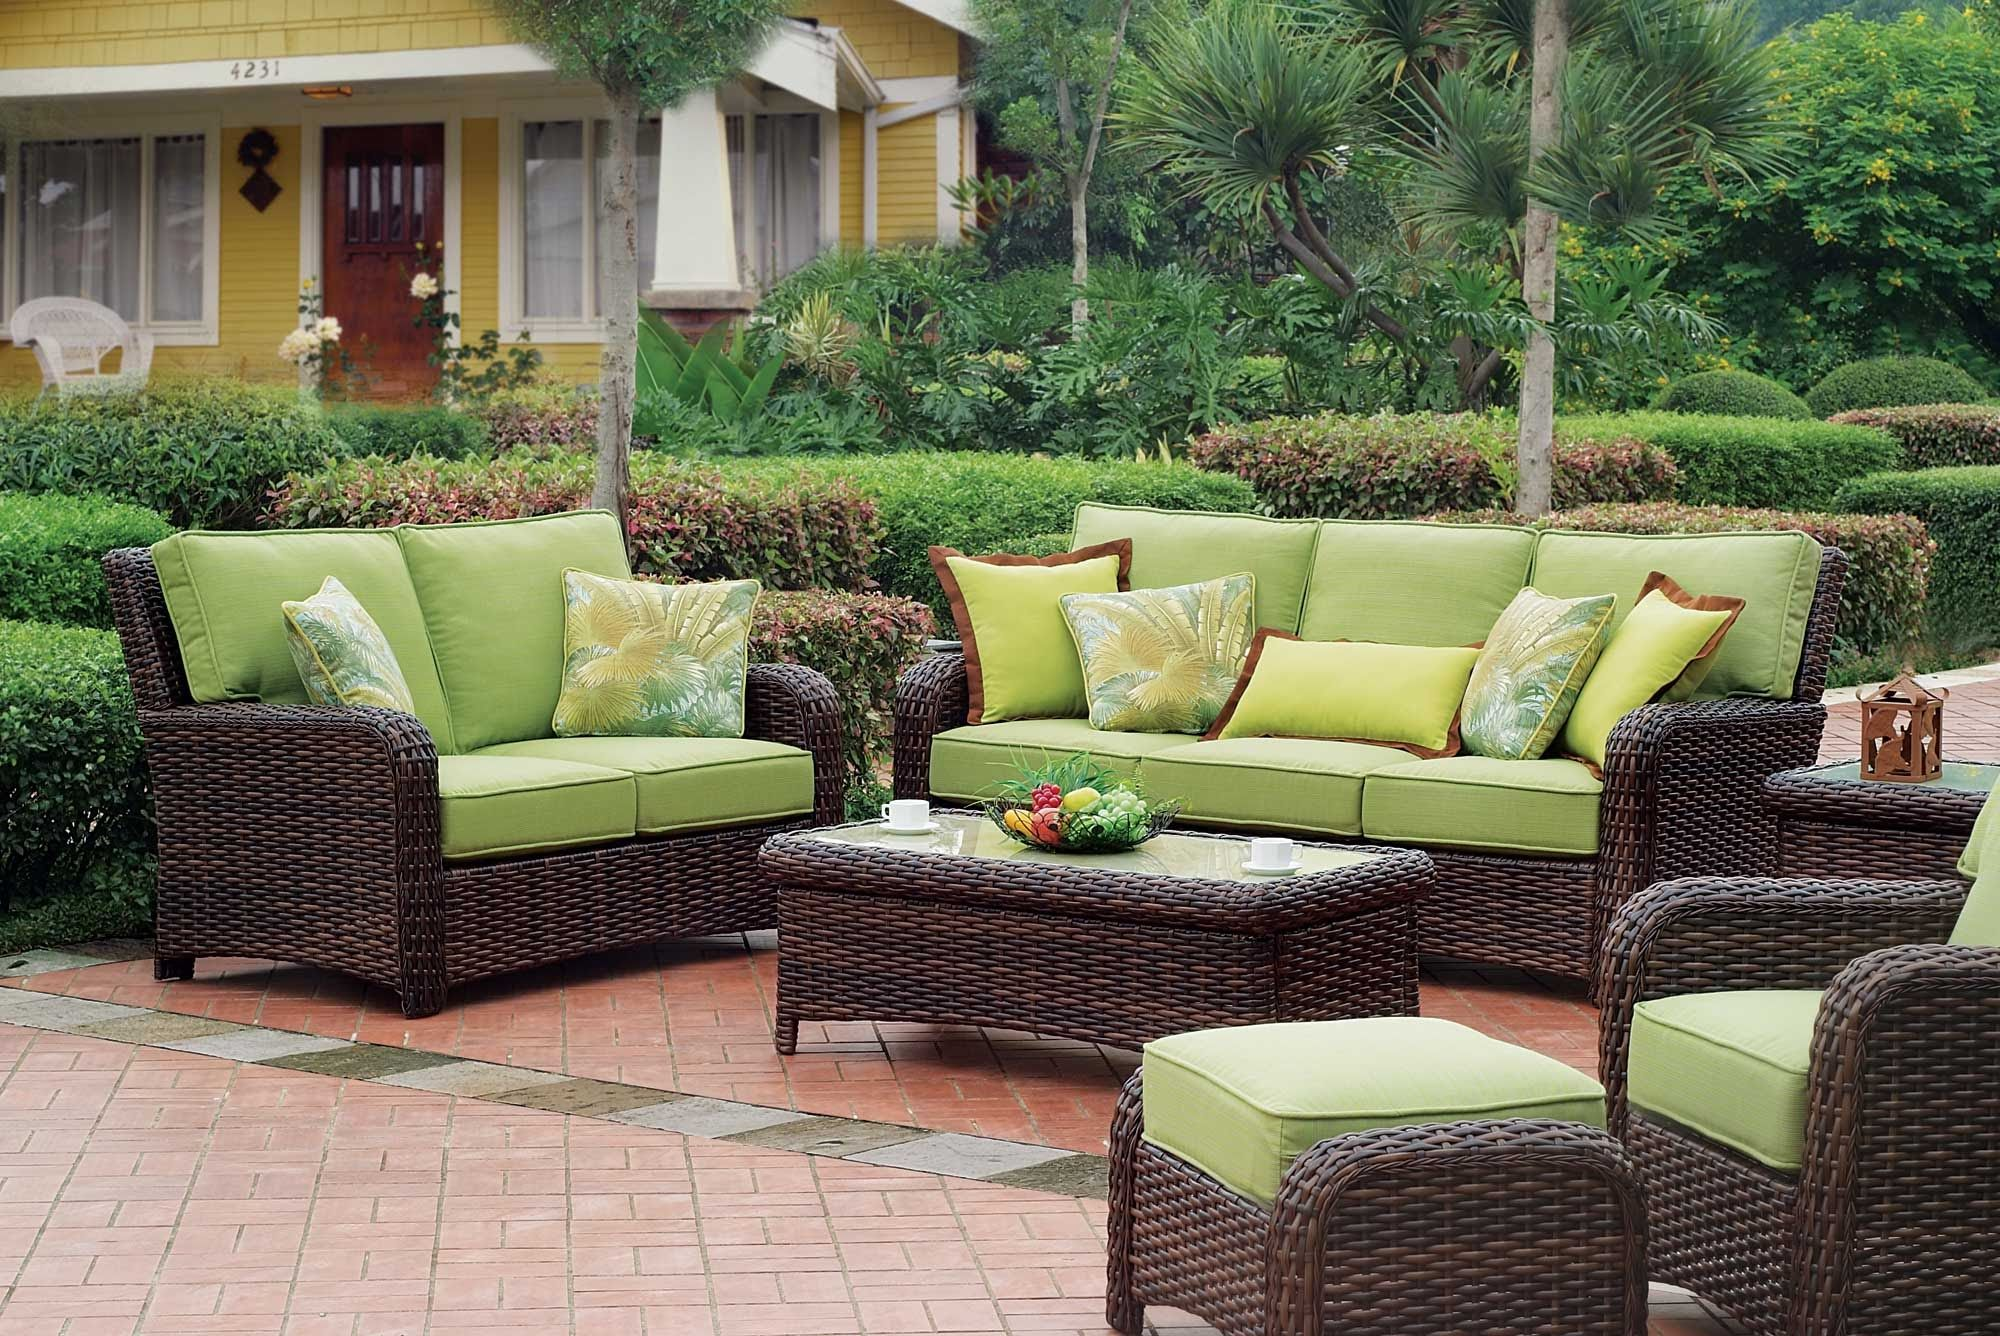 Uncategorized How To Make Wicker Furniture furnitures wicker patio furniture set with green cushions table glass top have some fruits